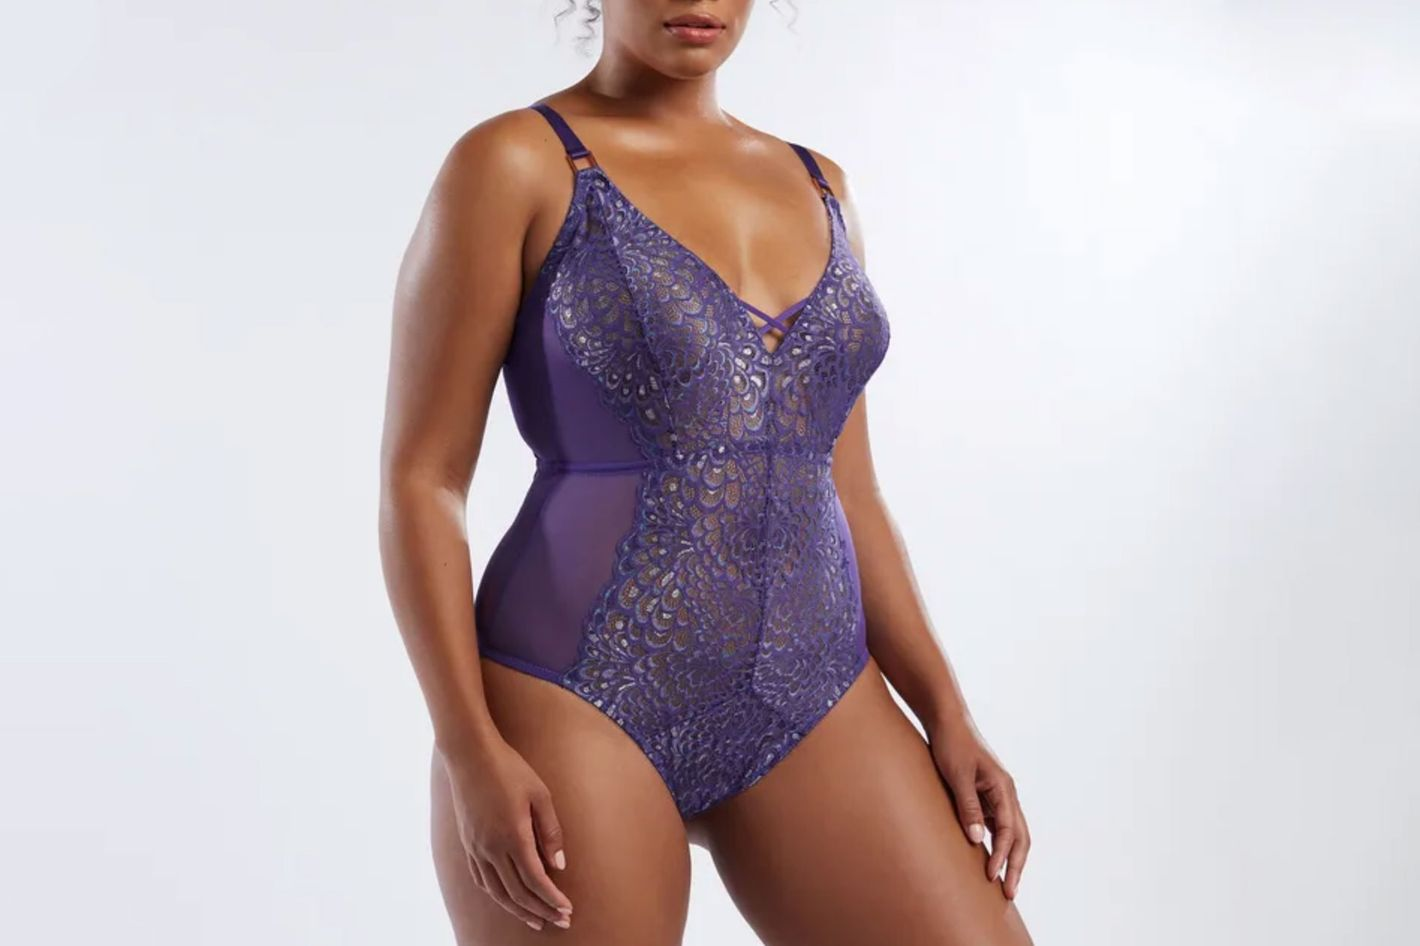 77ae98935 A Quest to Find Good Lingerie for Curvy Women